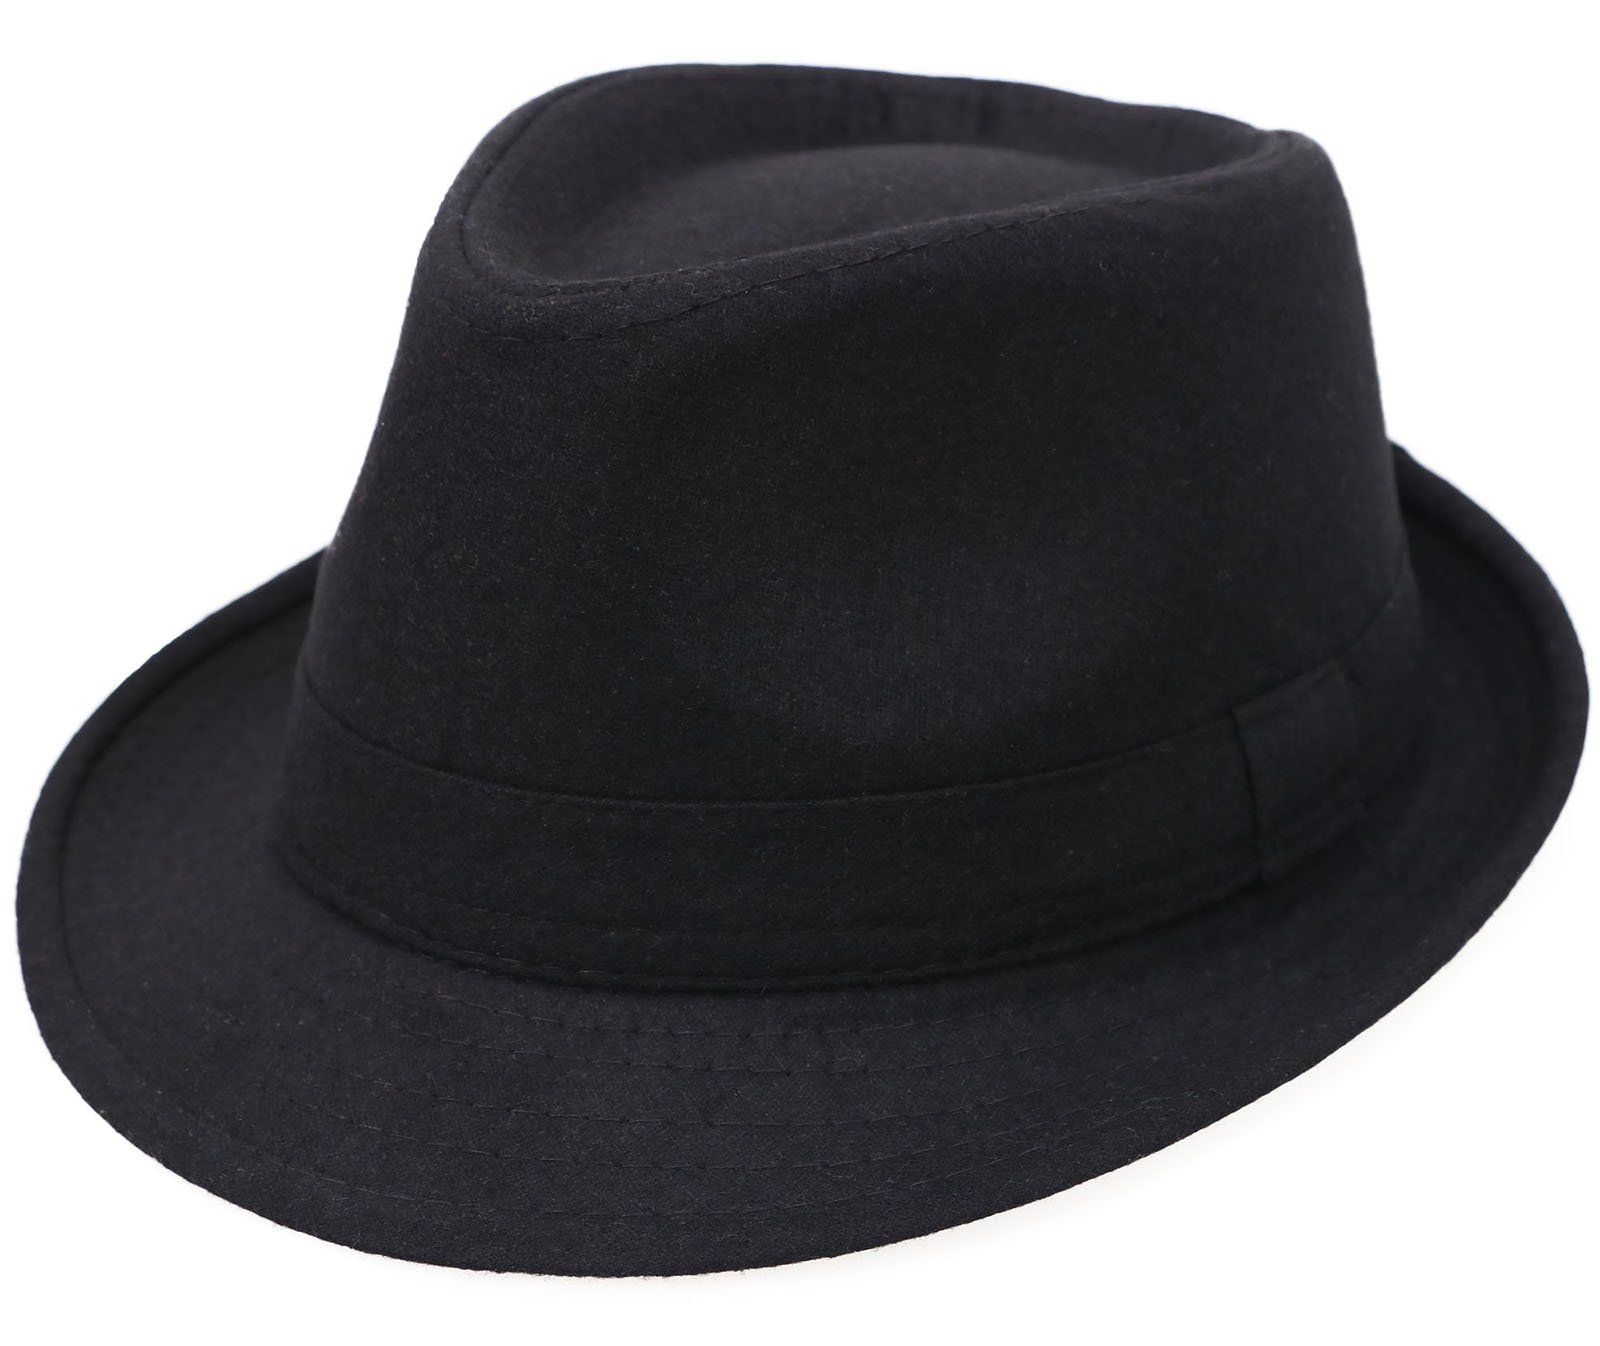 Men's Classic Manhattan Structured Gangster Trilby Fedora Hat, Black by YoungLove (Image #1)